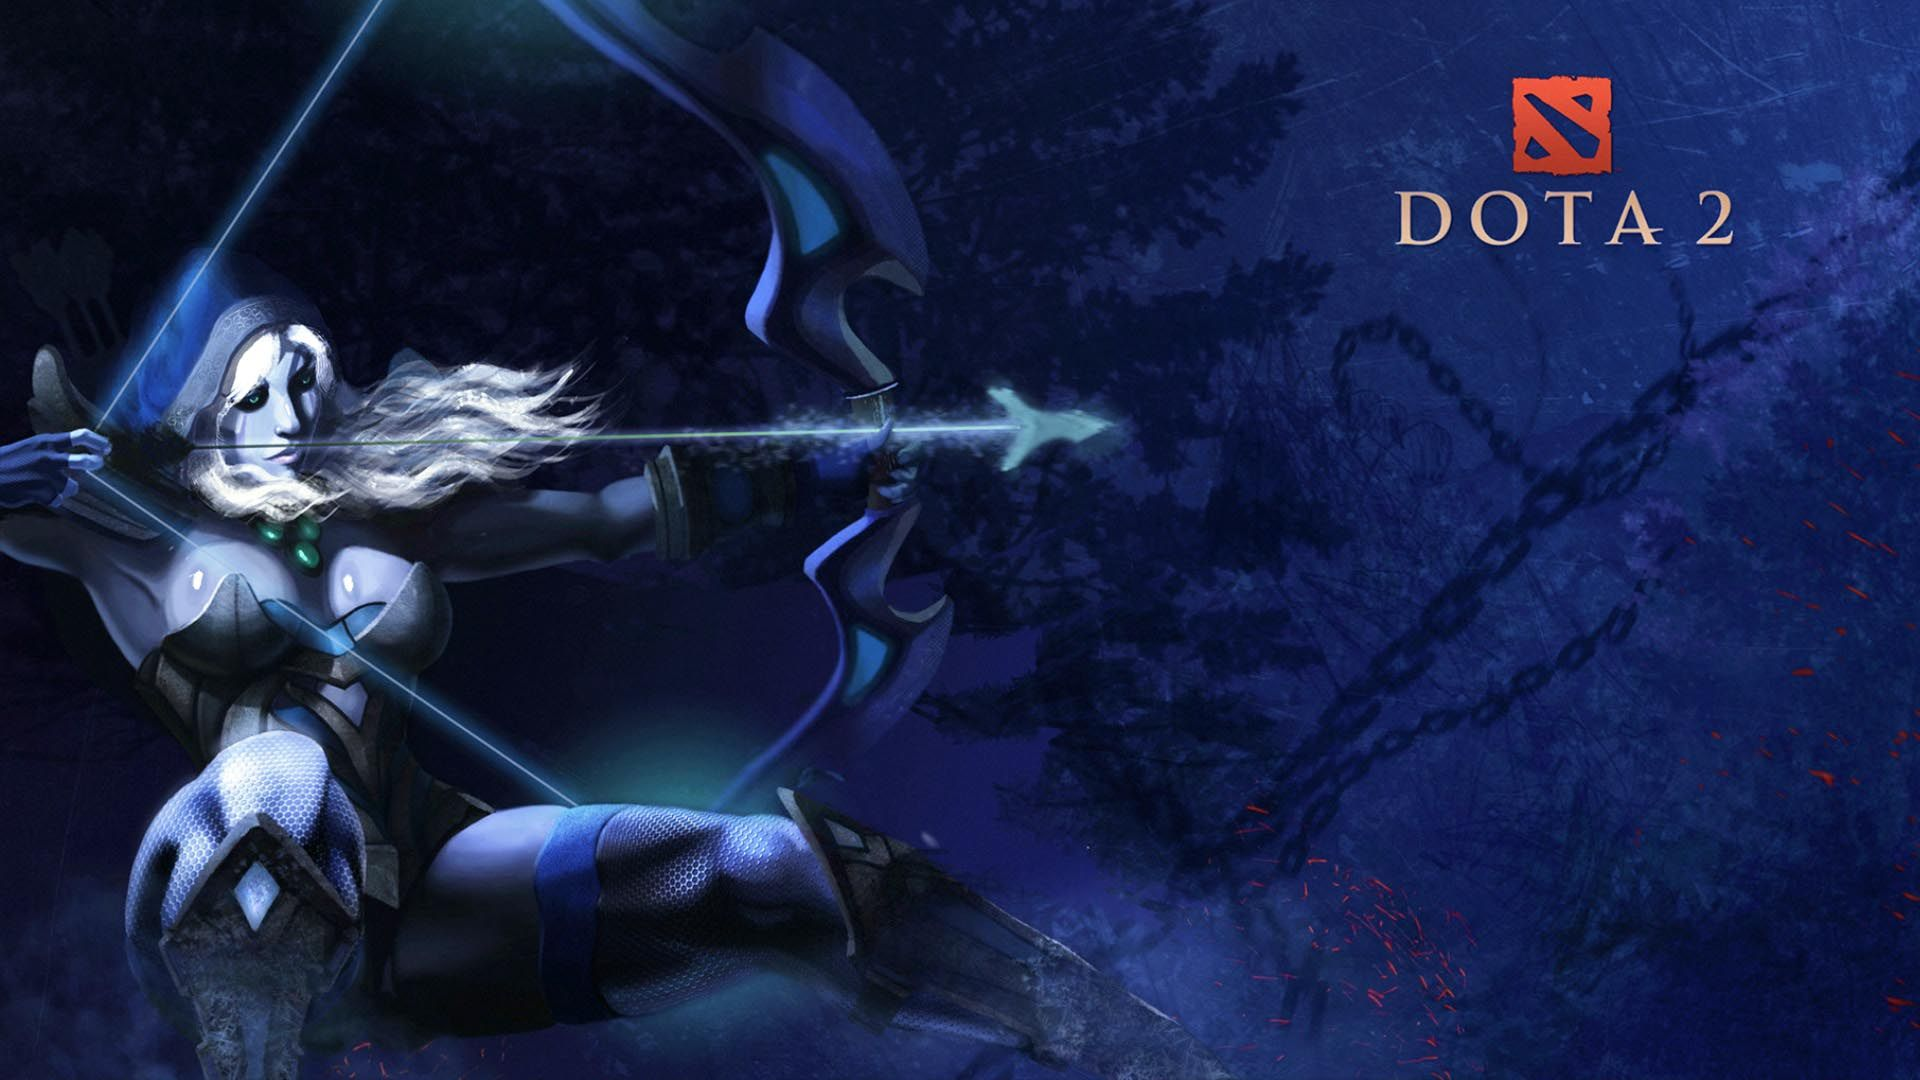 Dota 2 Drow Ranger Wallpaper For Iphone For Desktop 1920x1080 Px